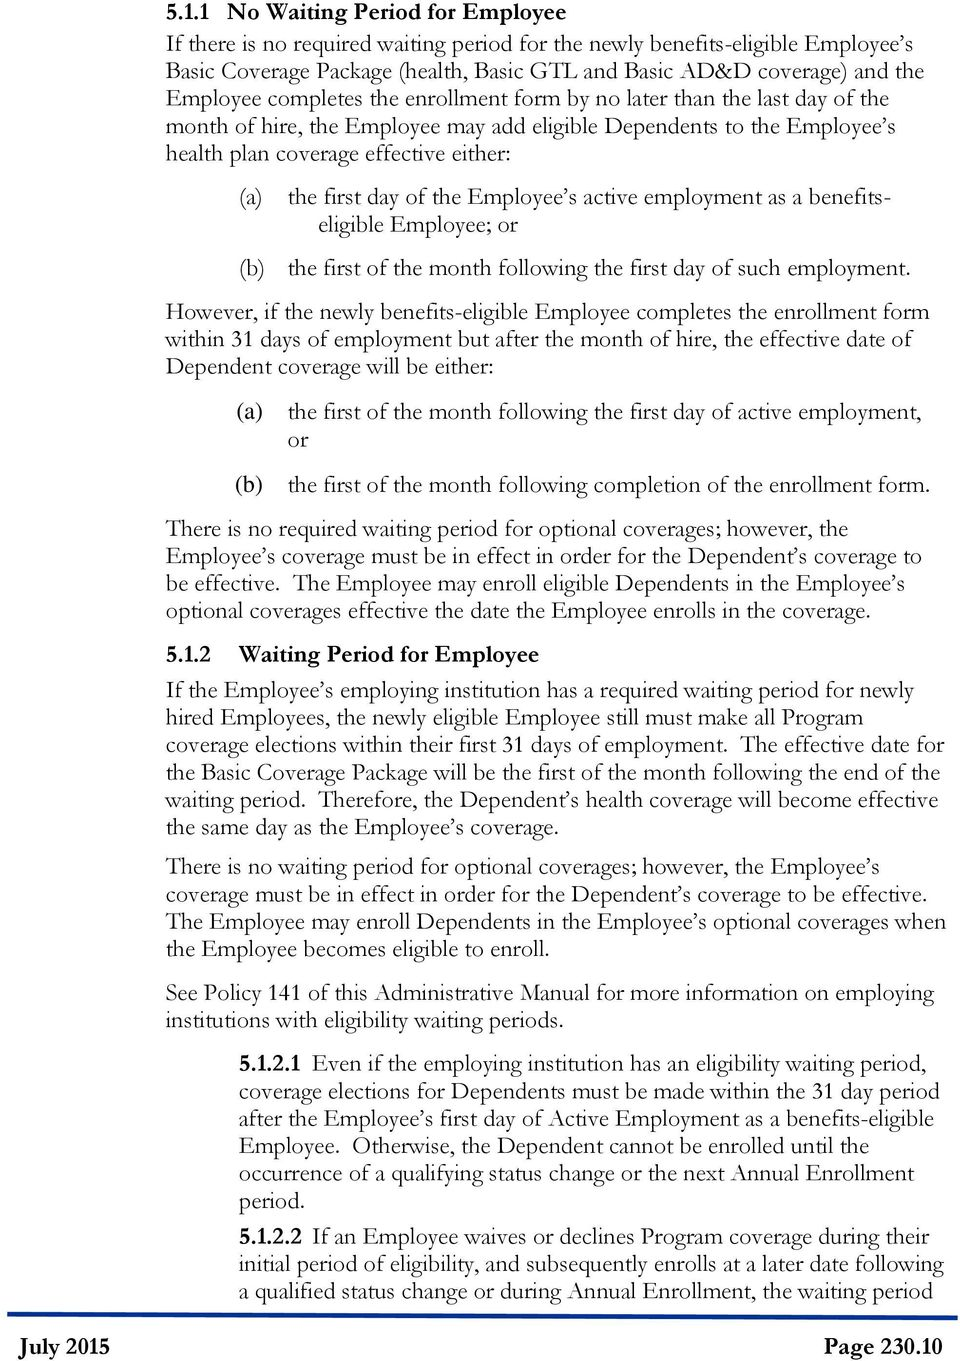 first day of the Employee s active employment as a benefitseligible Employee; or (b) the first of the month following the first day of such employment.